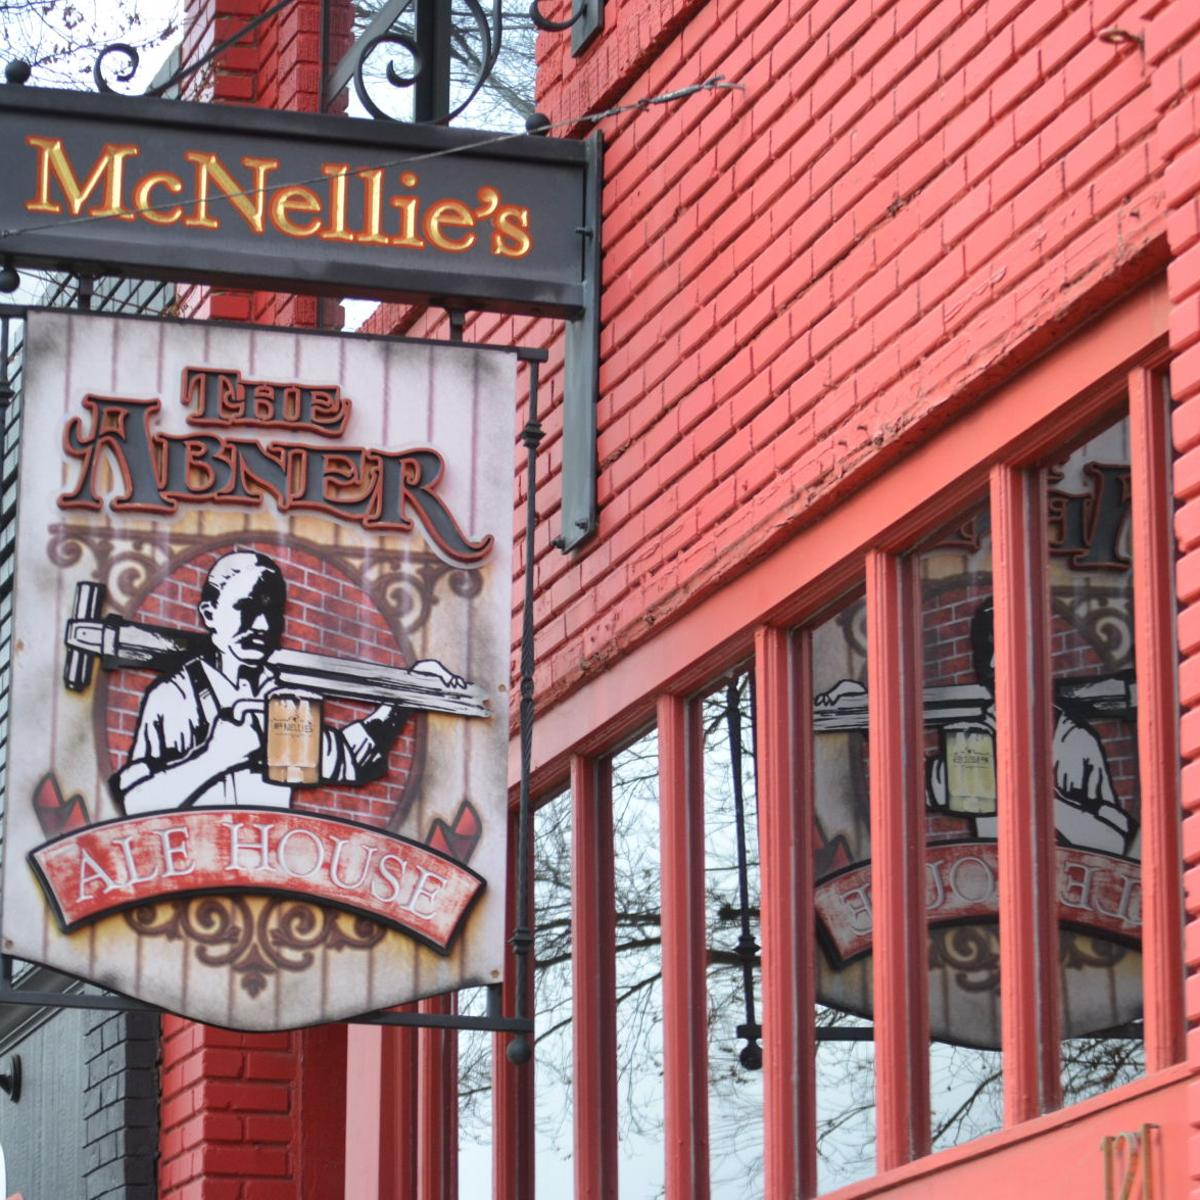 McNellie's to close its location in Norman, citing city's